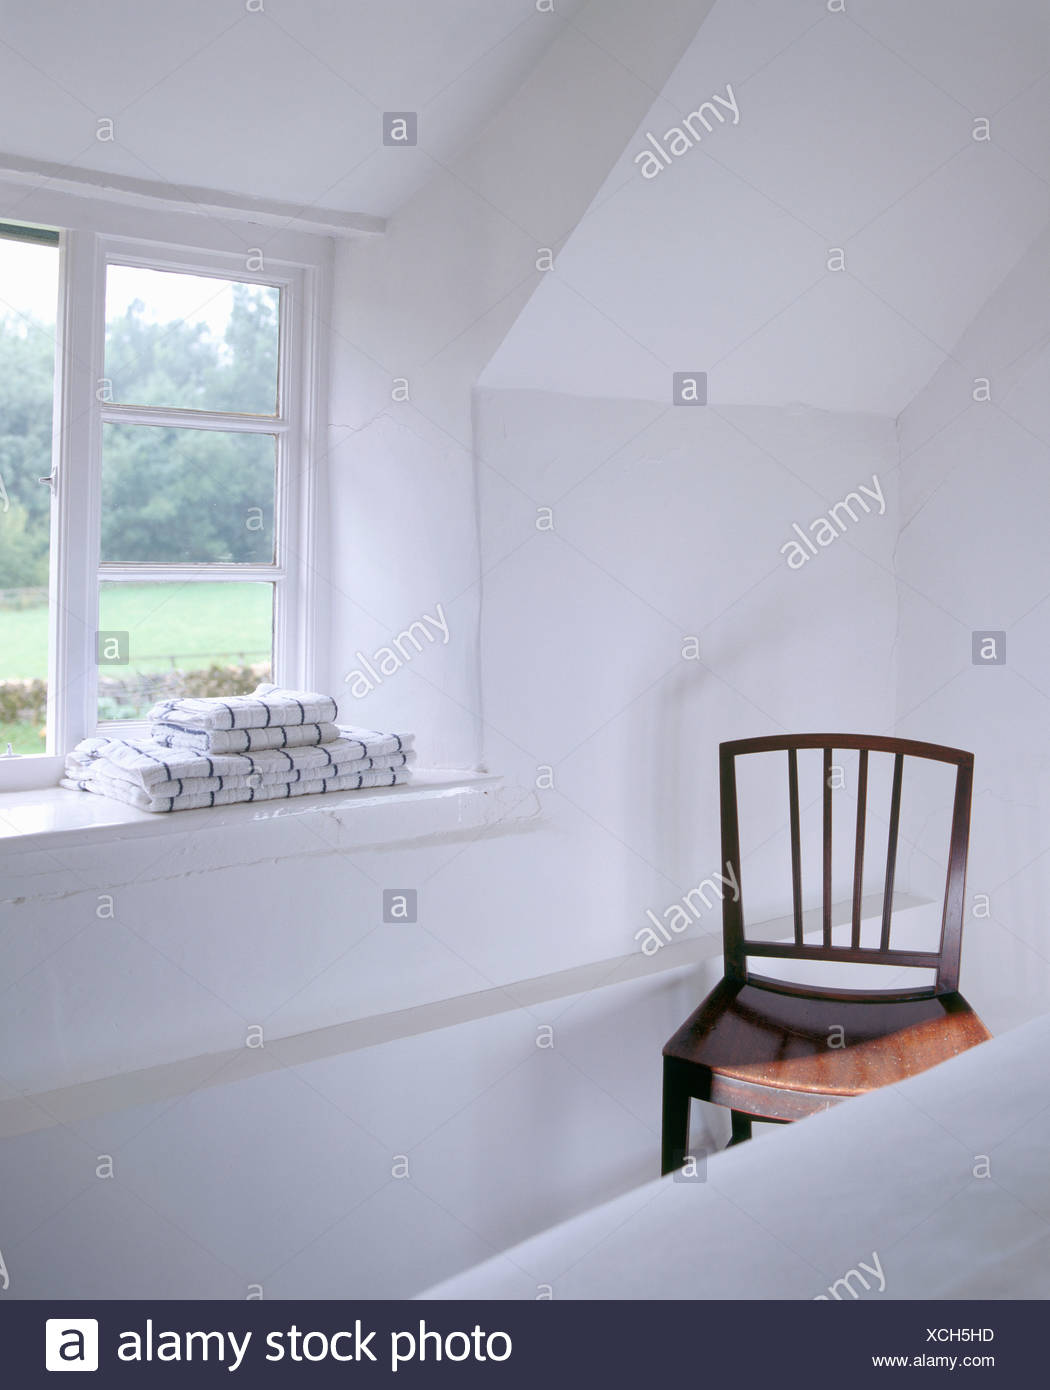 Wooden Chair Beside Open Window With Pile Of Towels On Windowsill In White Country Bedroom Sloping Ceiling